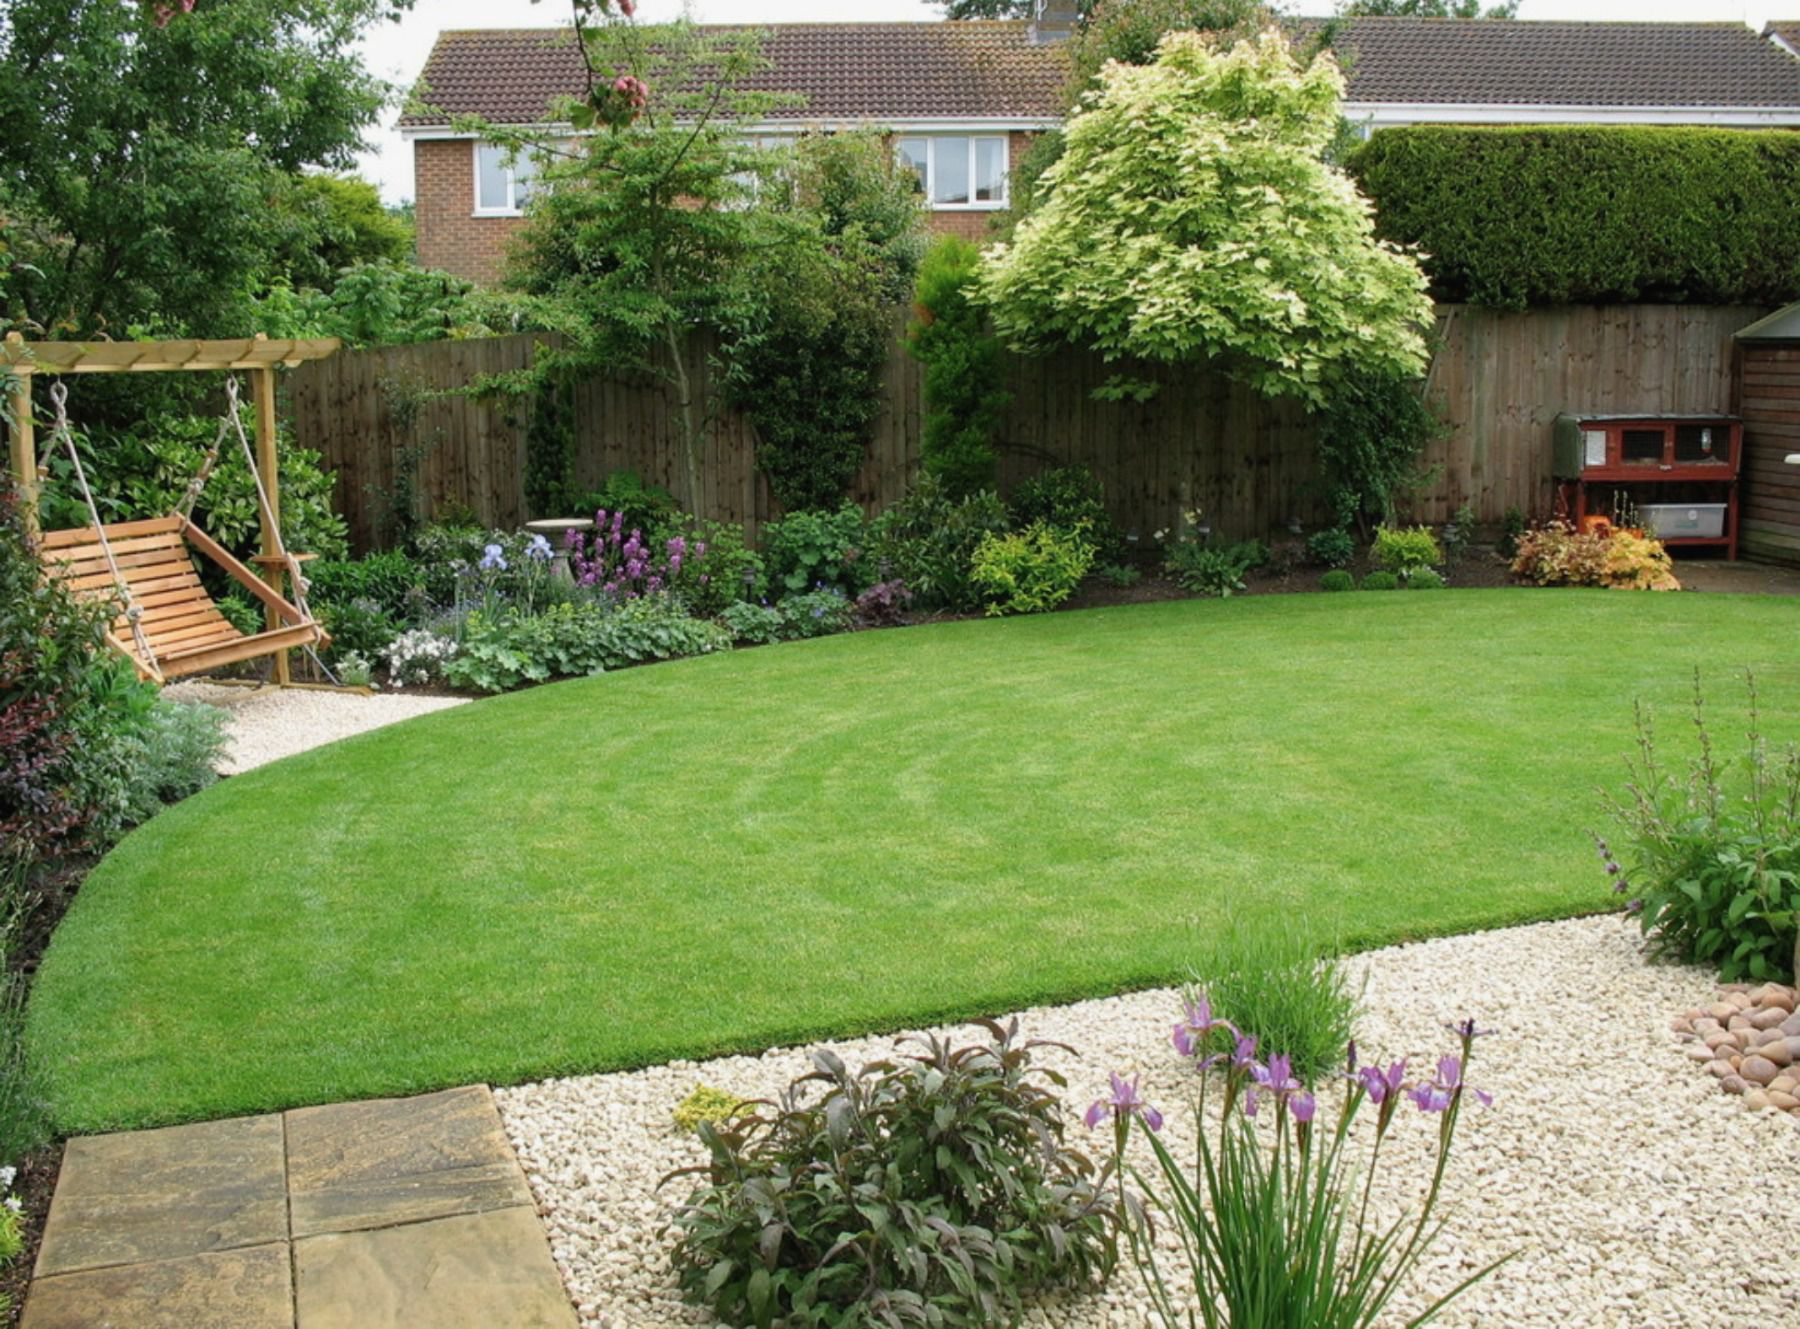 50 Backyard Landscaping Ideas To Inspire You with regard to Backyard Landscaping Photos